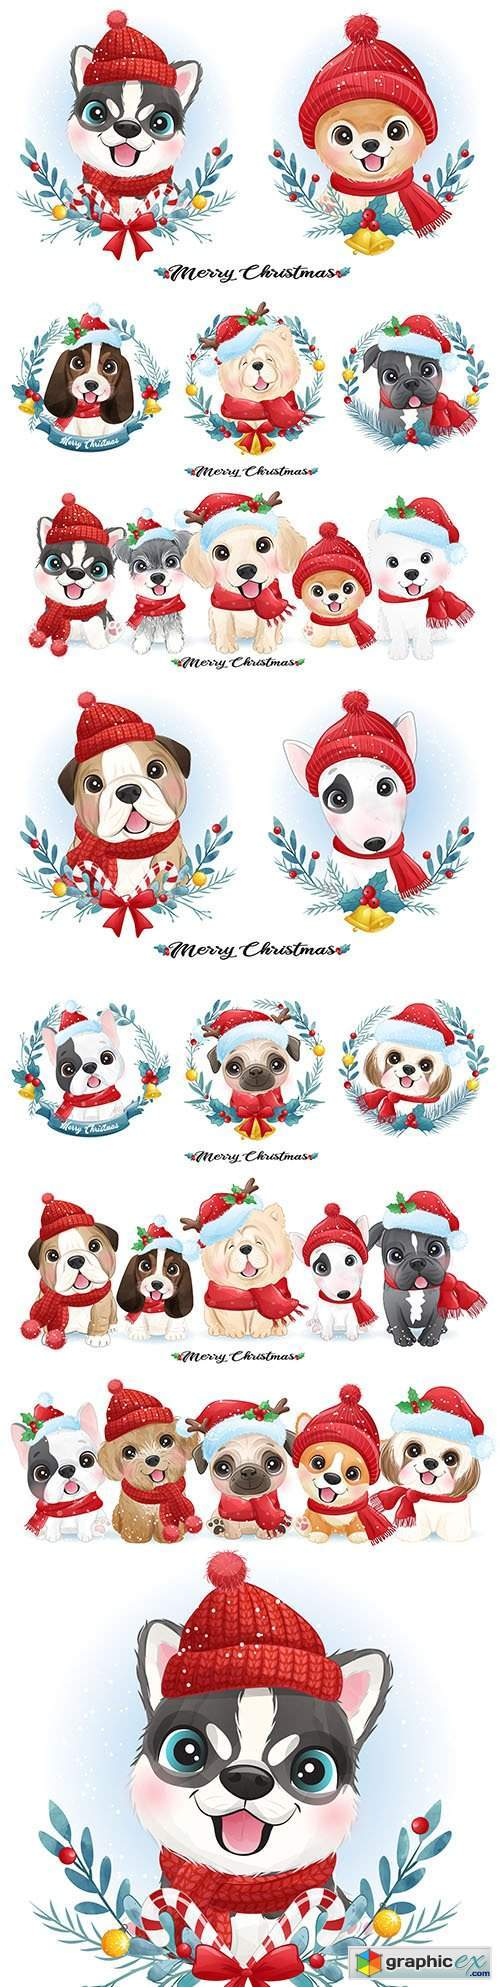 Cute puppy Christmas with watercolor illustration